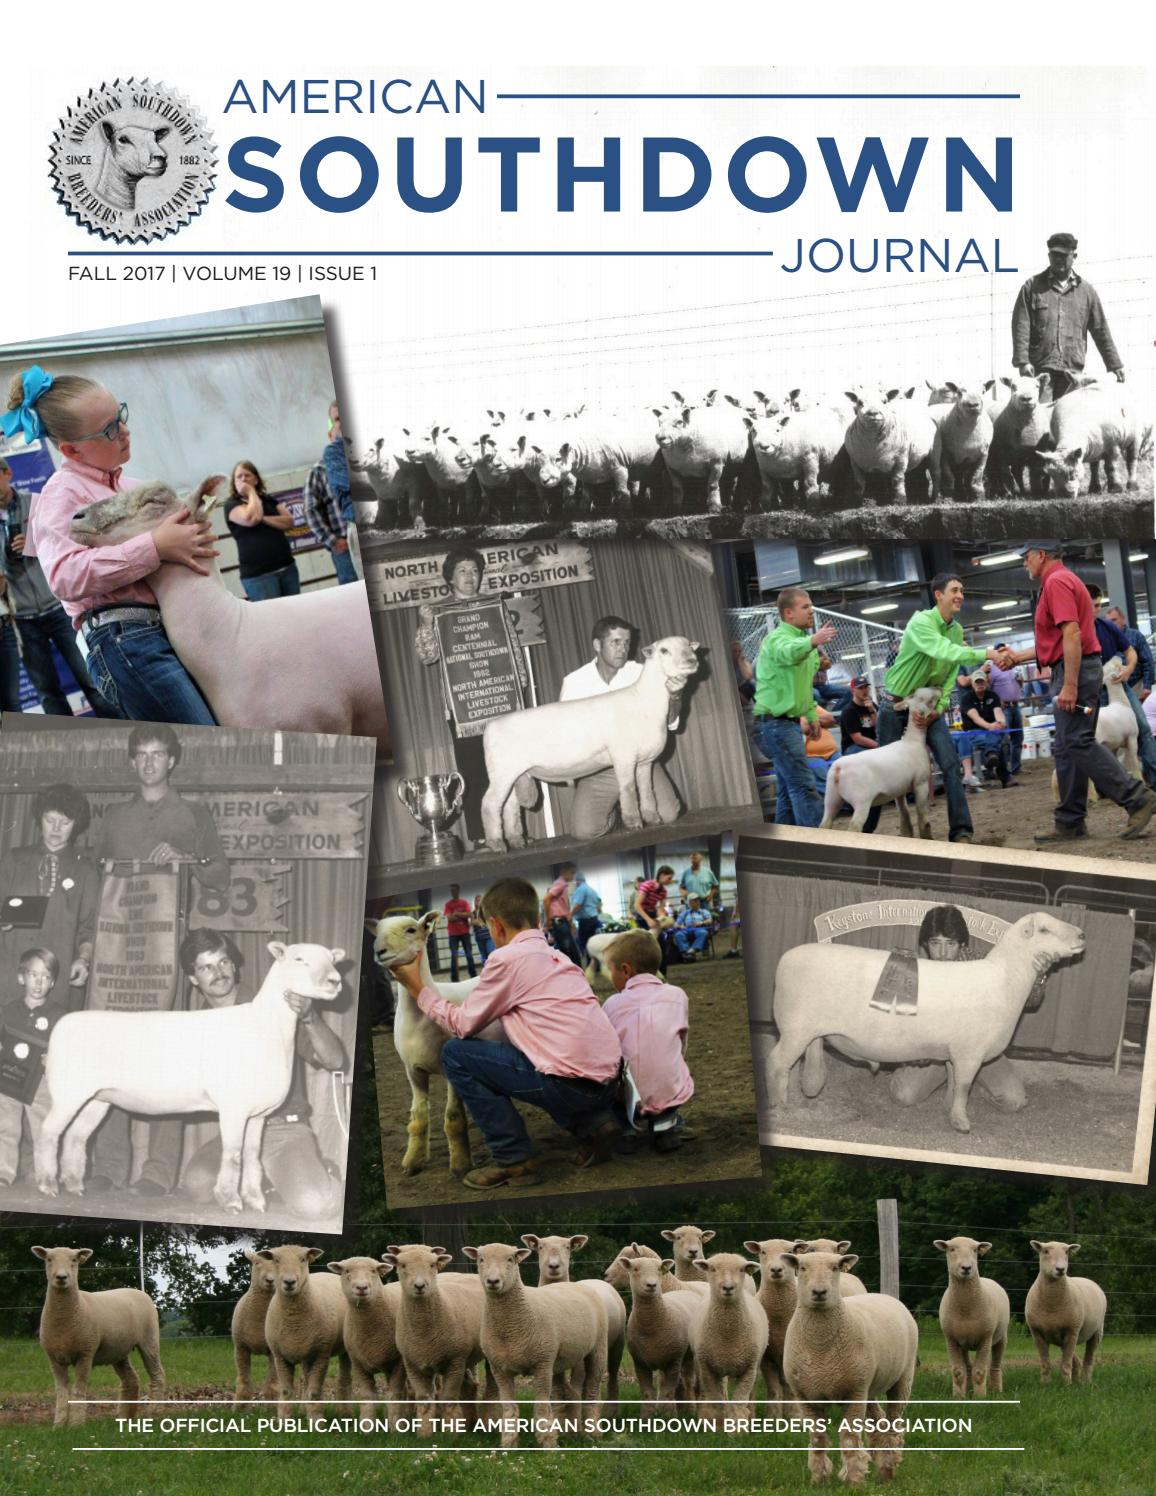 Fall 2017 American Southdown Journal by The American